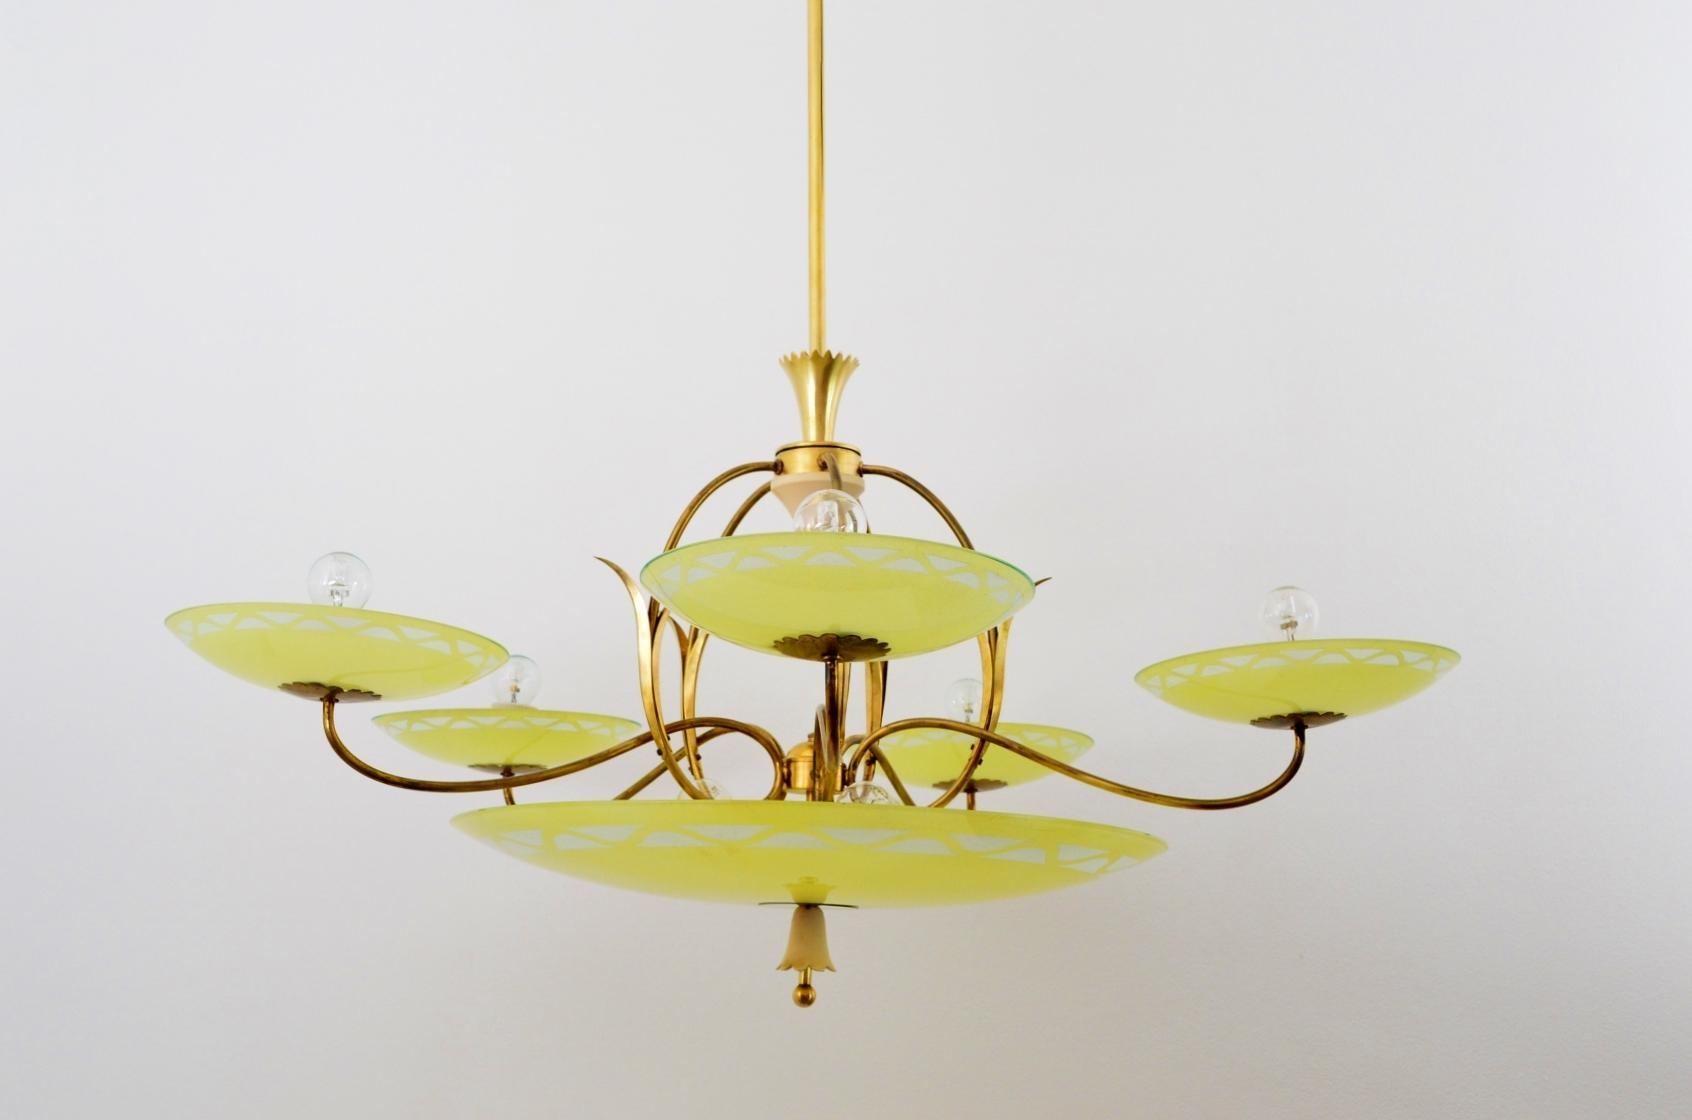 Large Vintage Italian Art Deco Five Arm Brass Yellow Glass Regarding Large Art Deco Chandelier (Image 13 of 15)